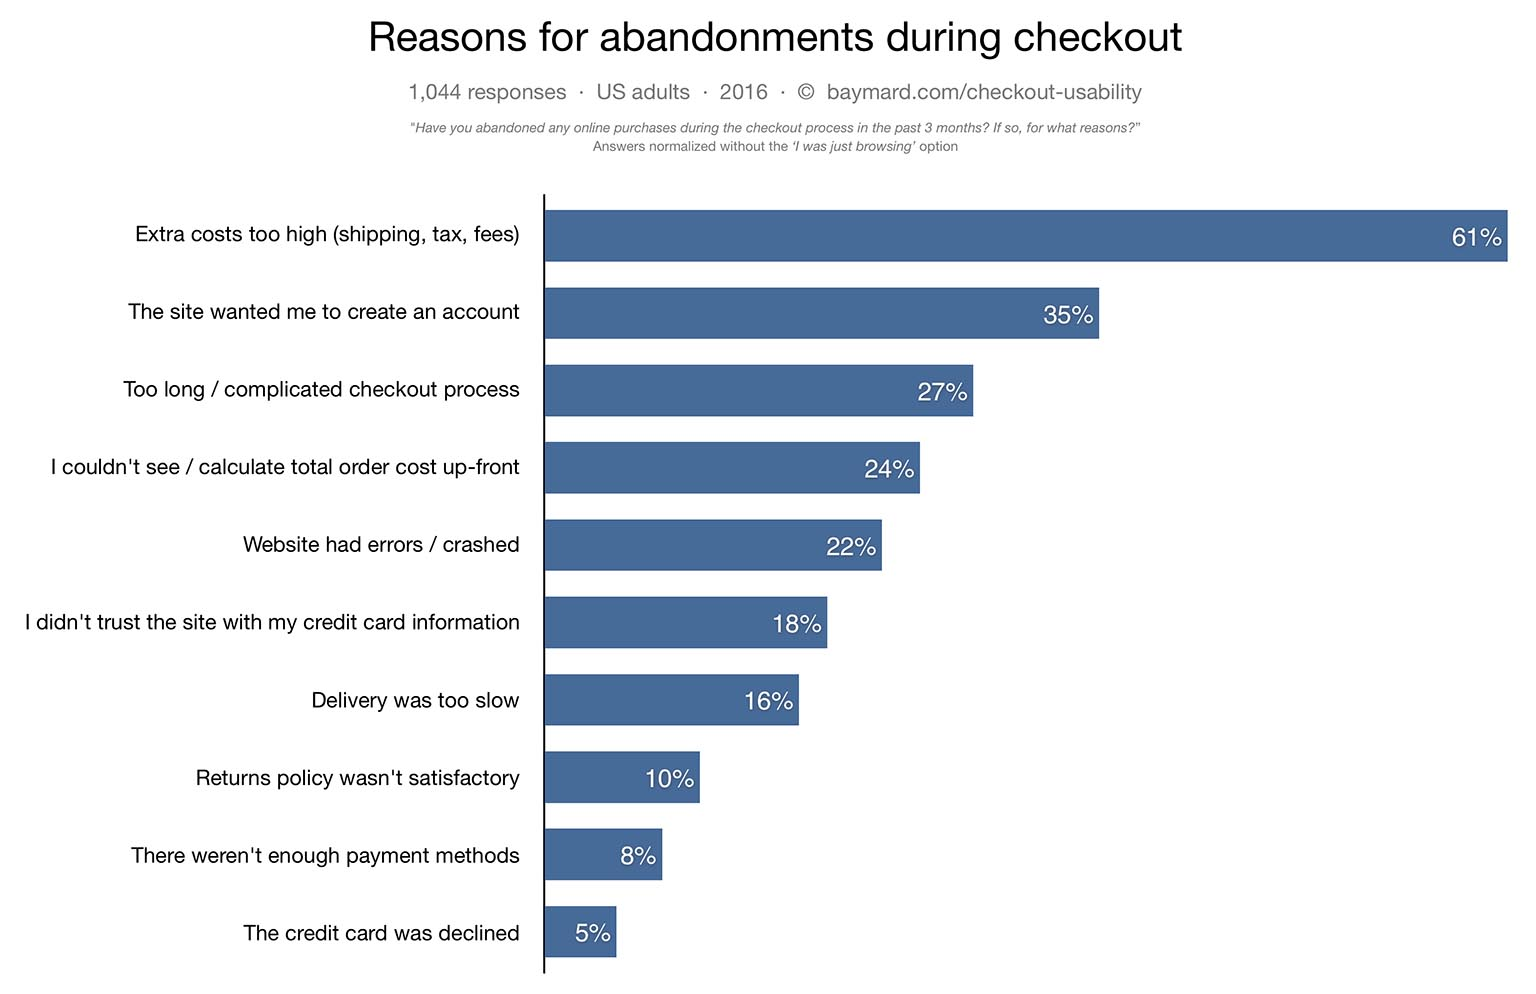 Reasons of abandonments during checkout